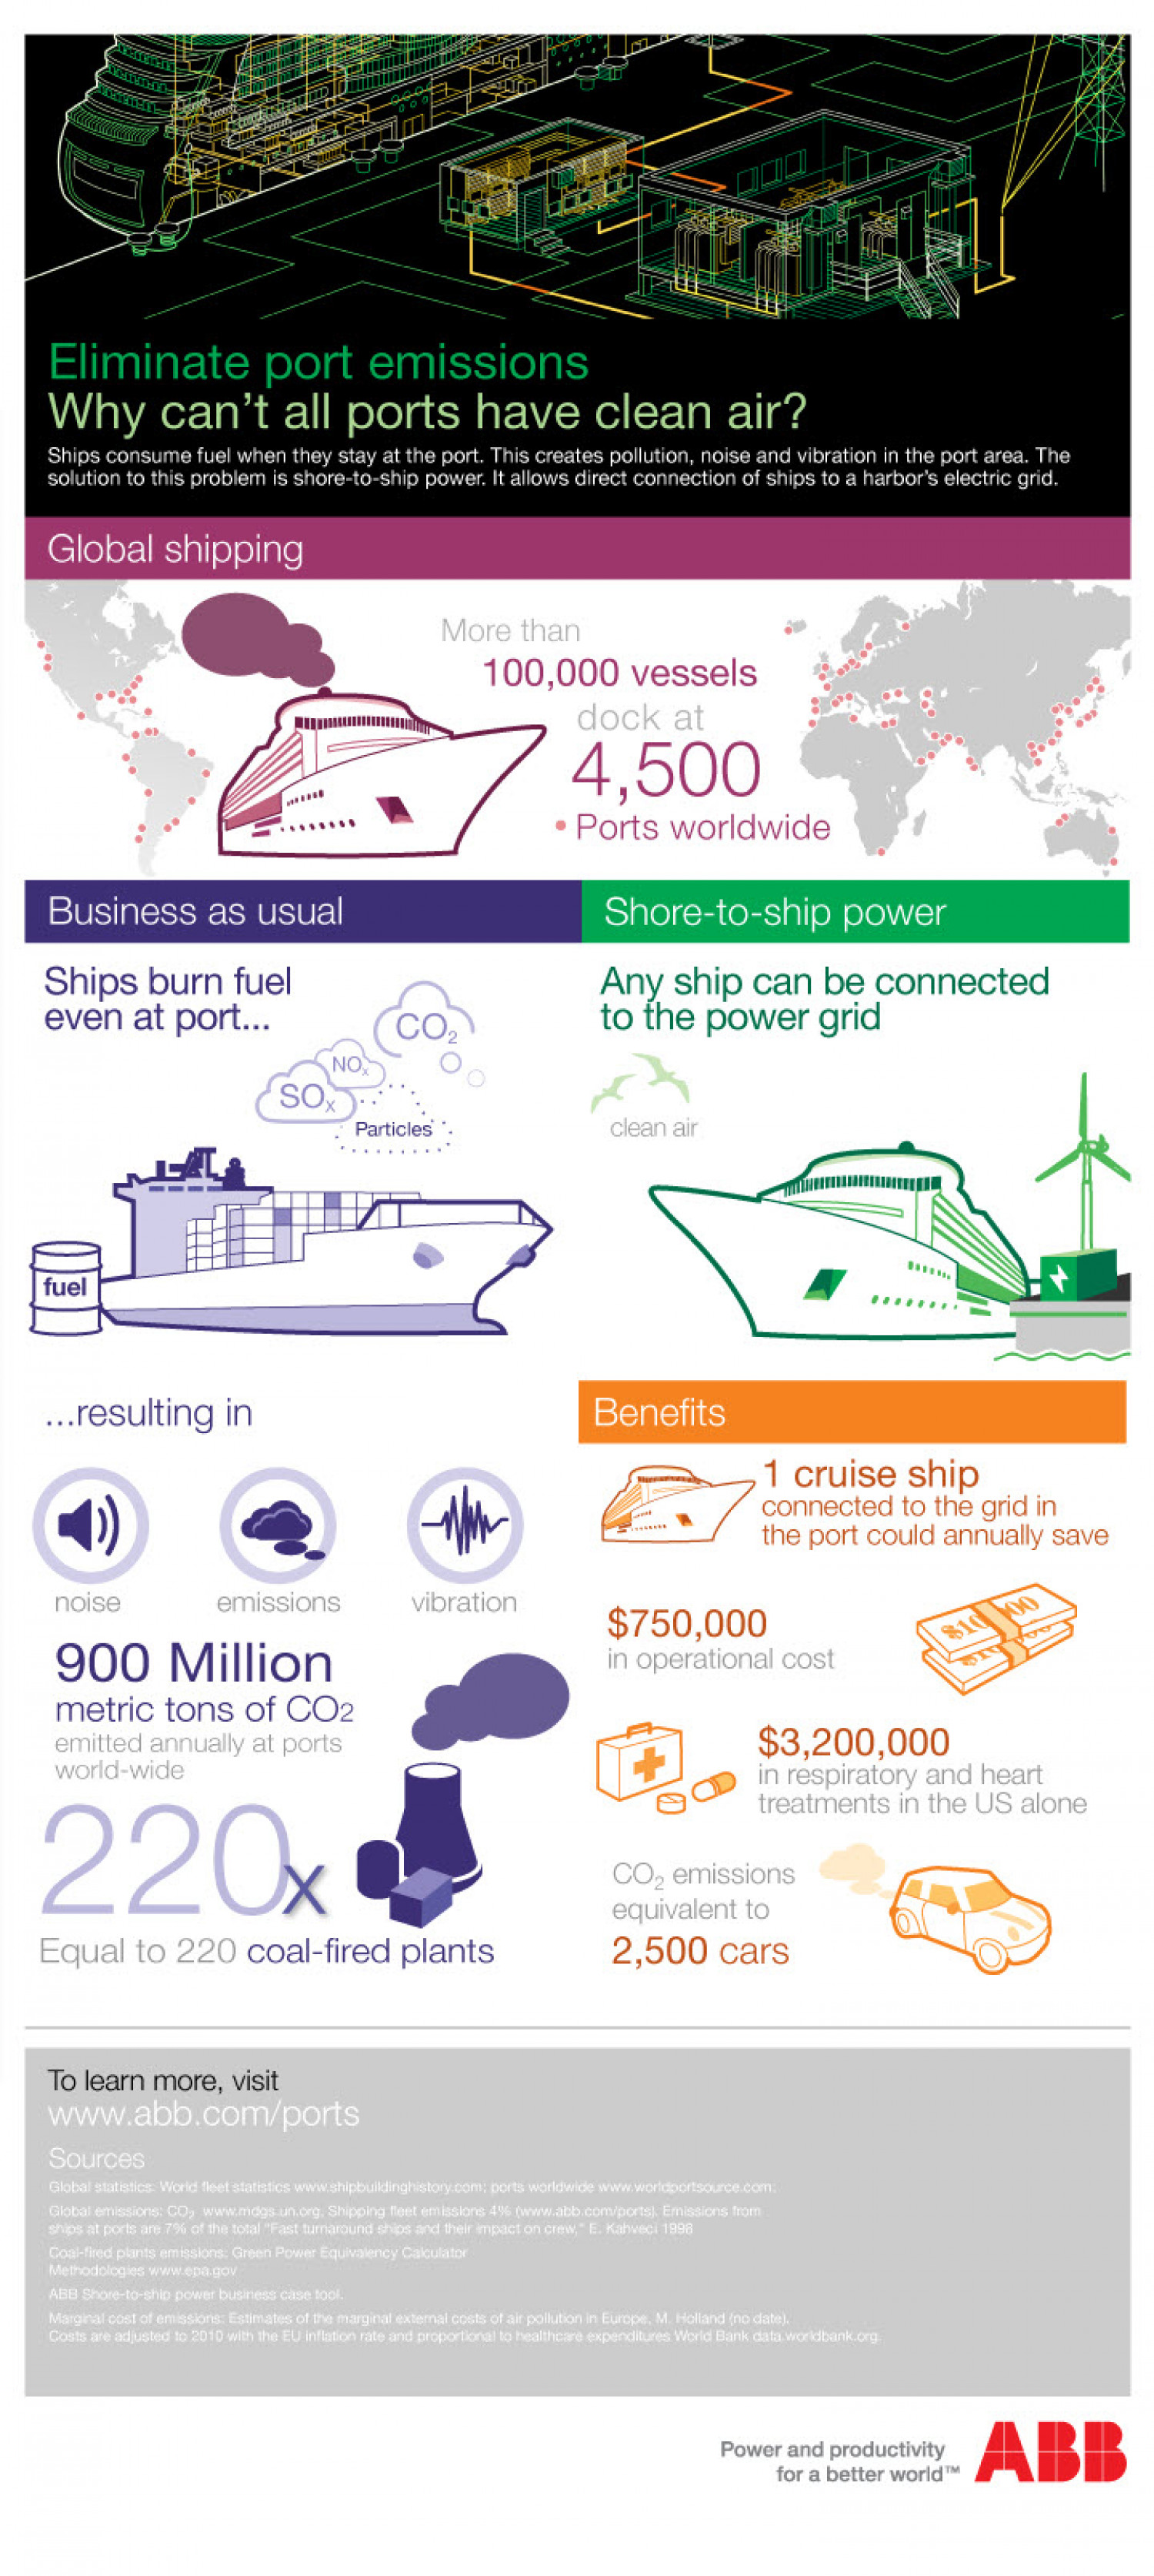 Reducing Shipping Emissions at Ports: A No-Brainer? Infographic